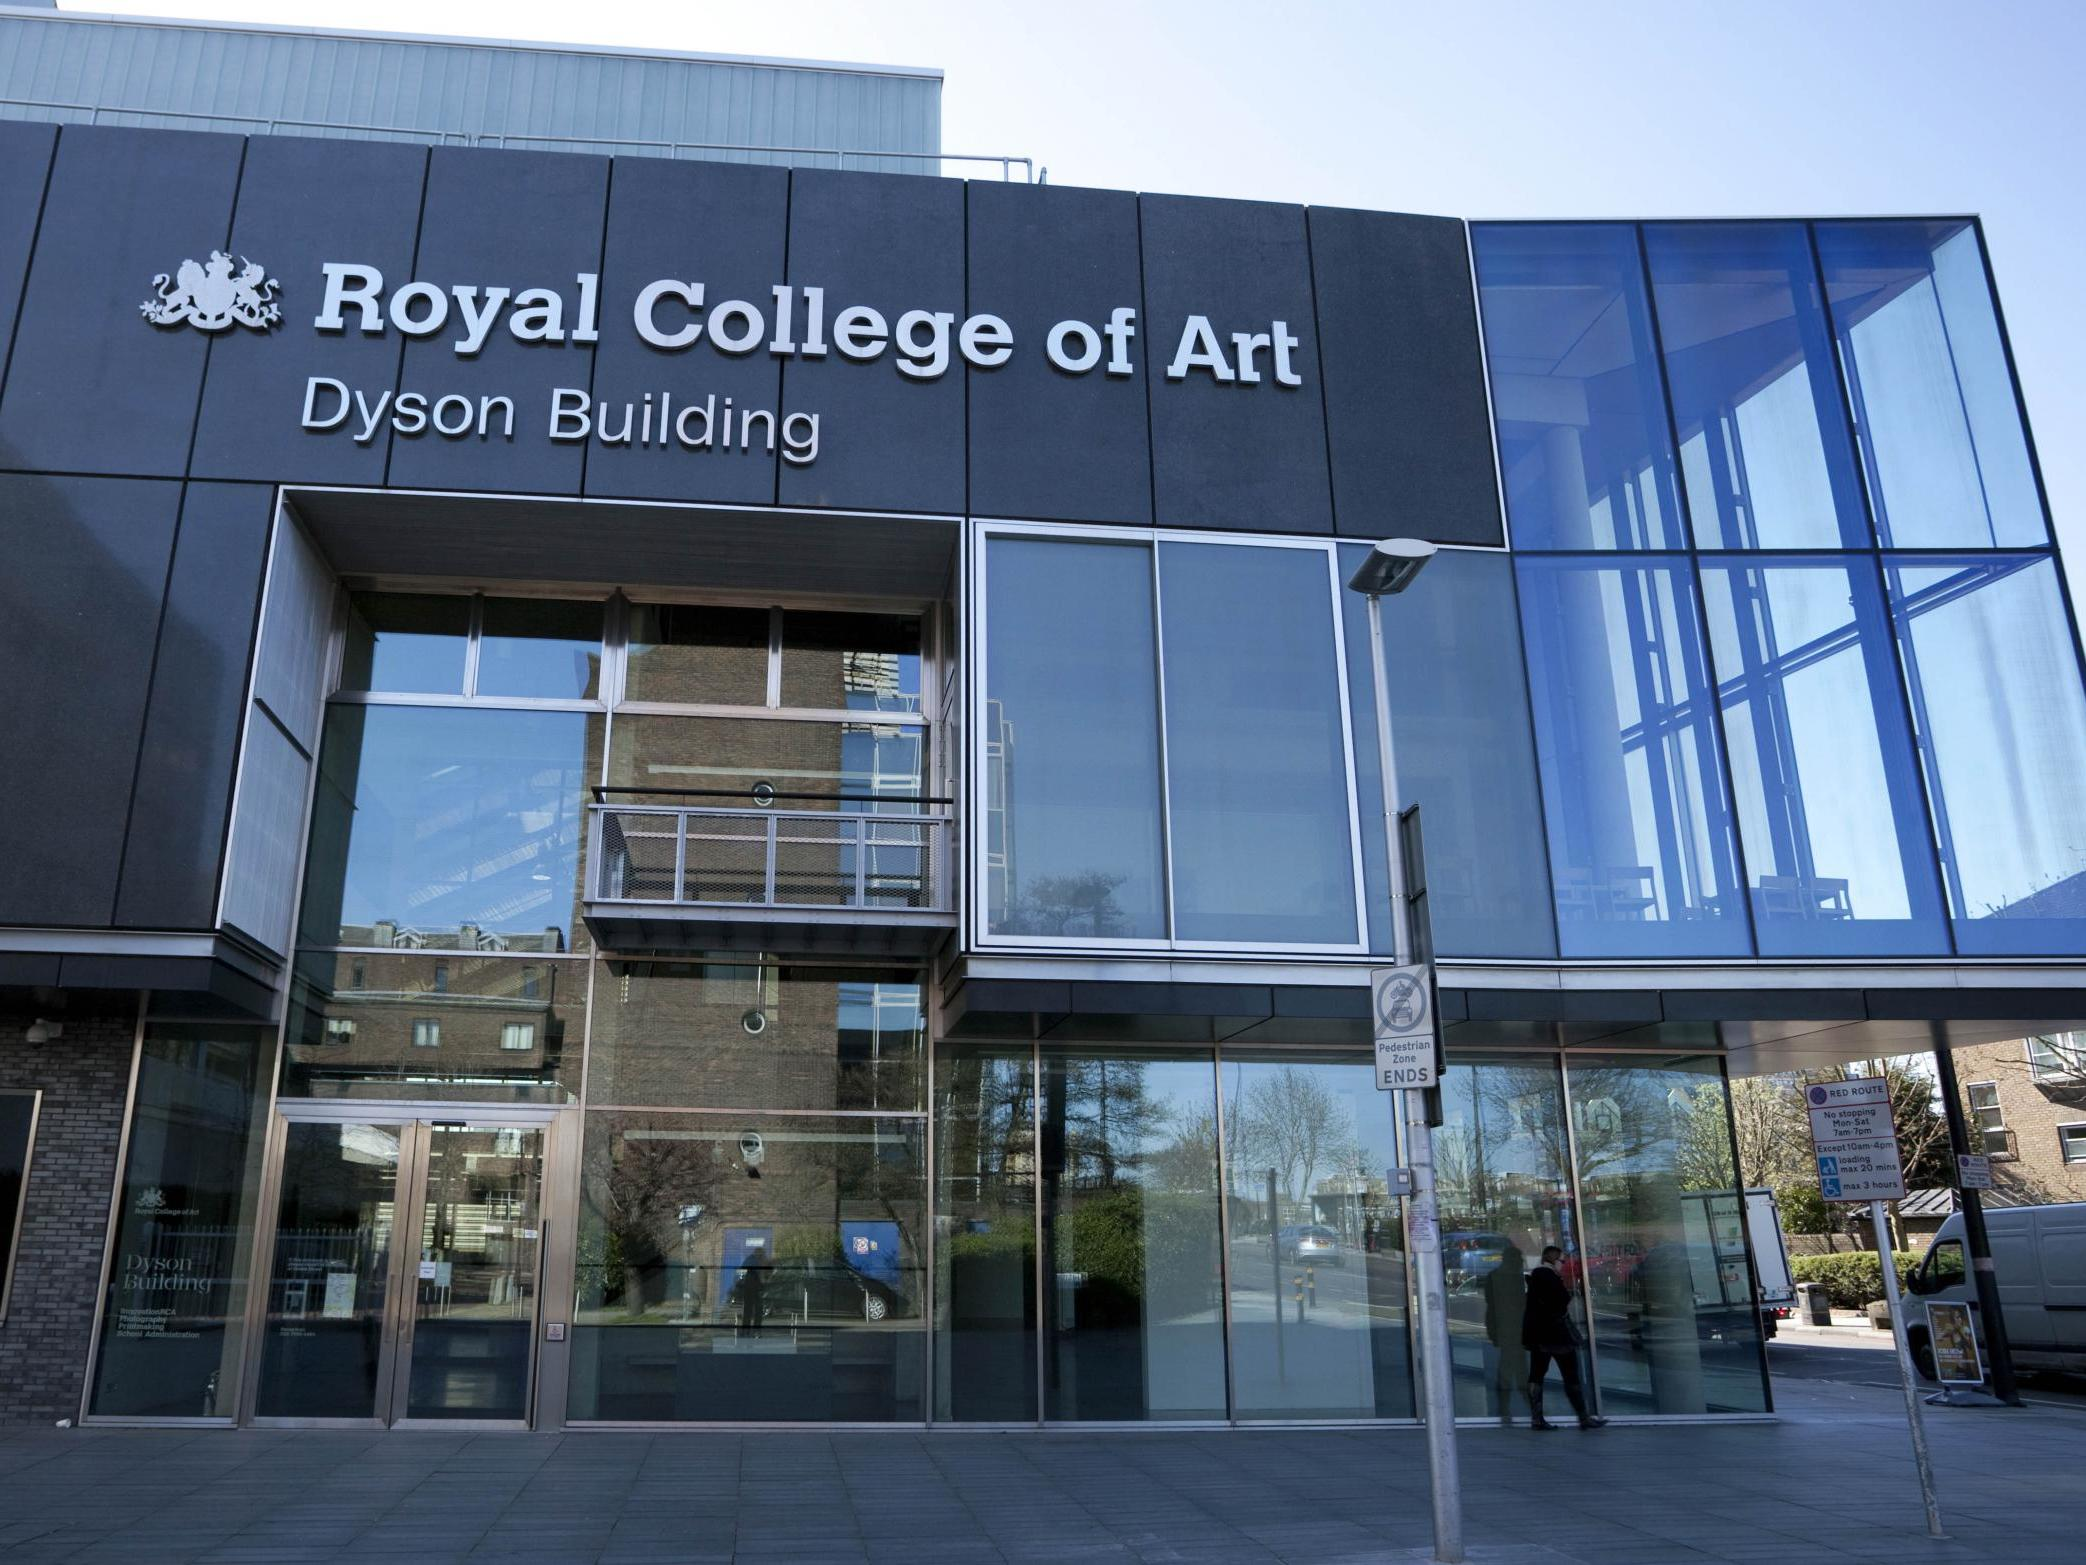 Royal College Of Art Drops White Male Diversity Chief Amid Accusations Of Insidious Systemic Racism The Independent Independent